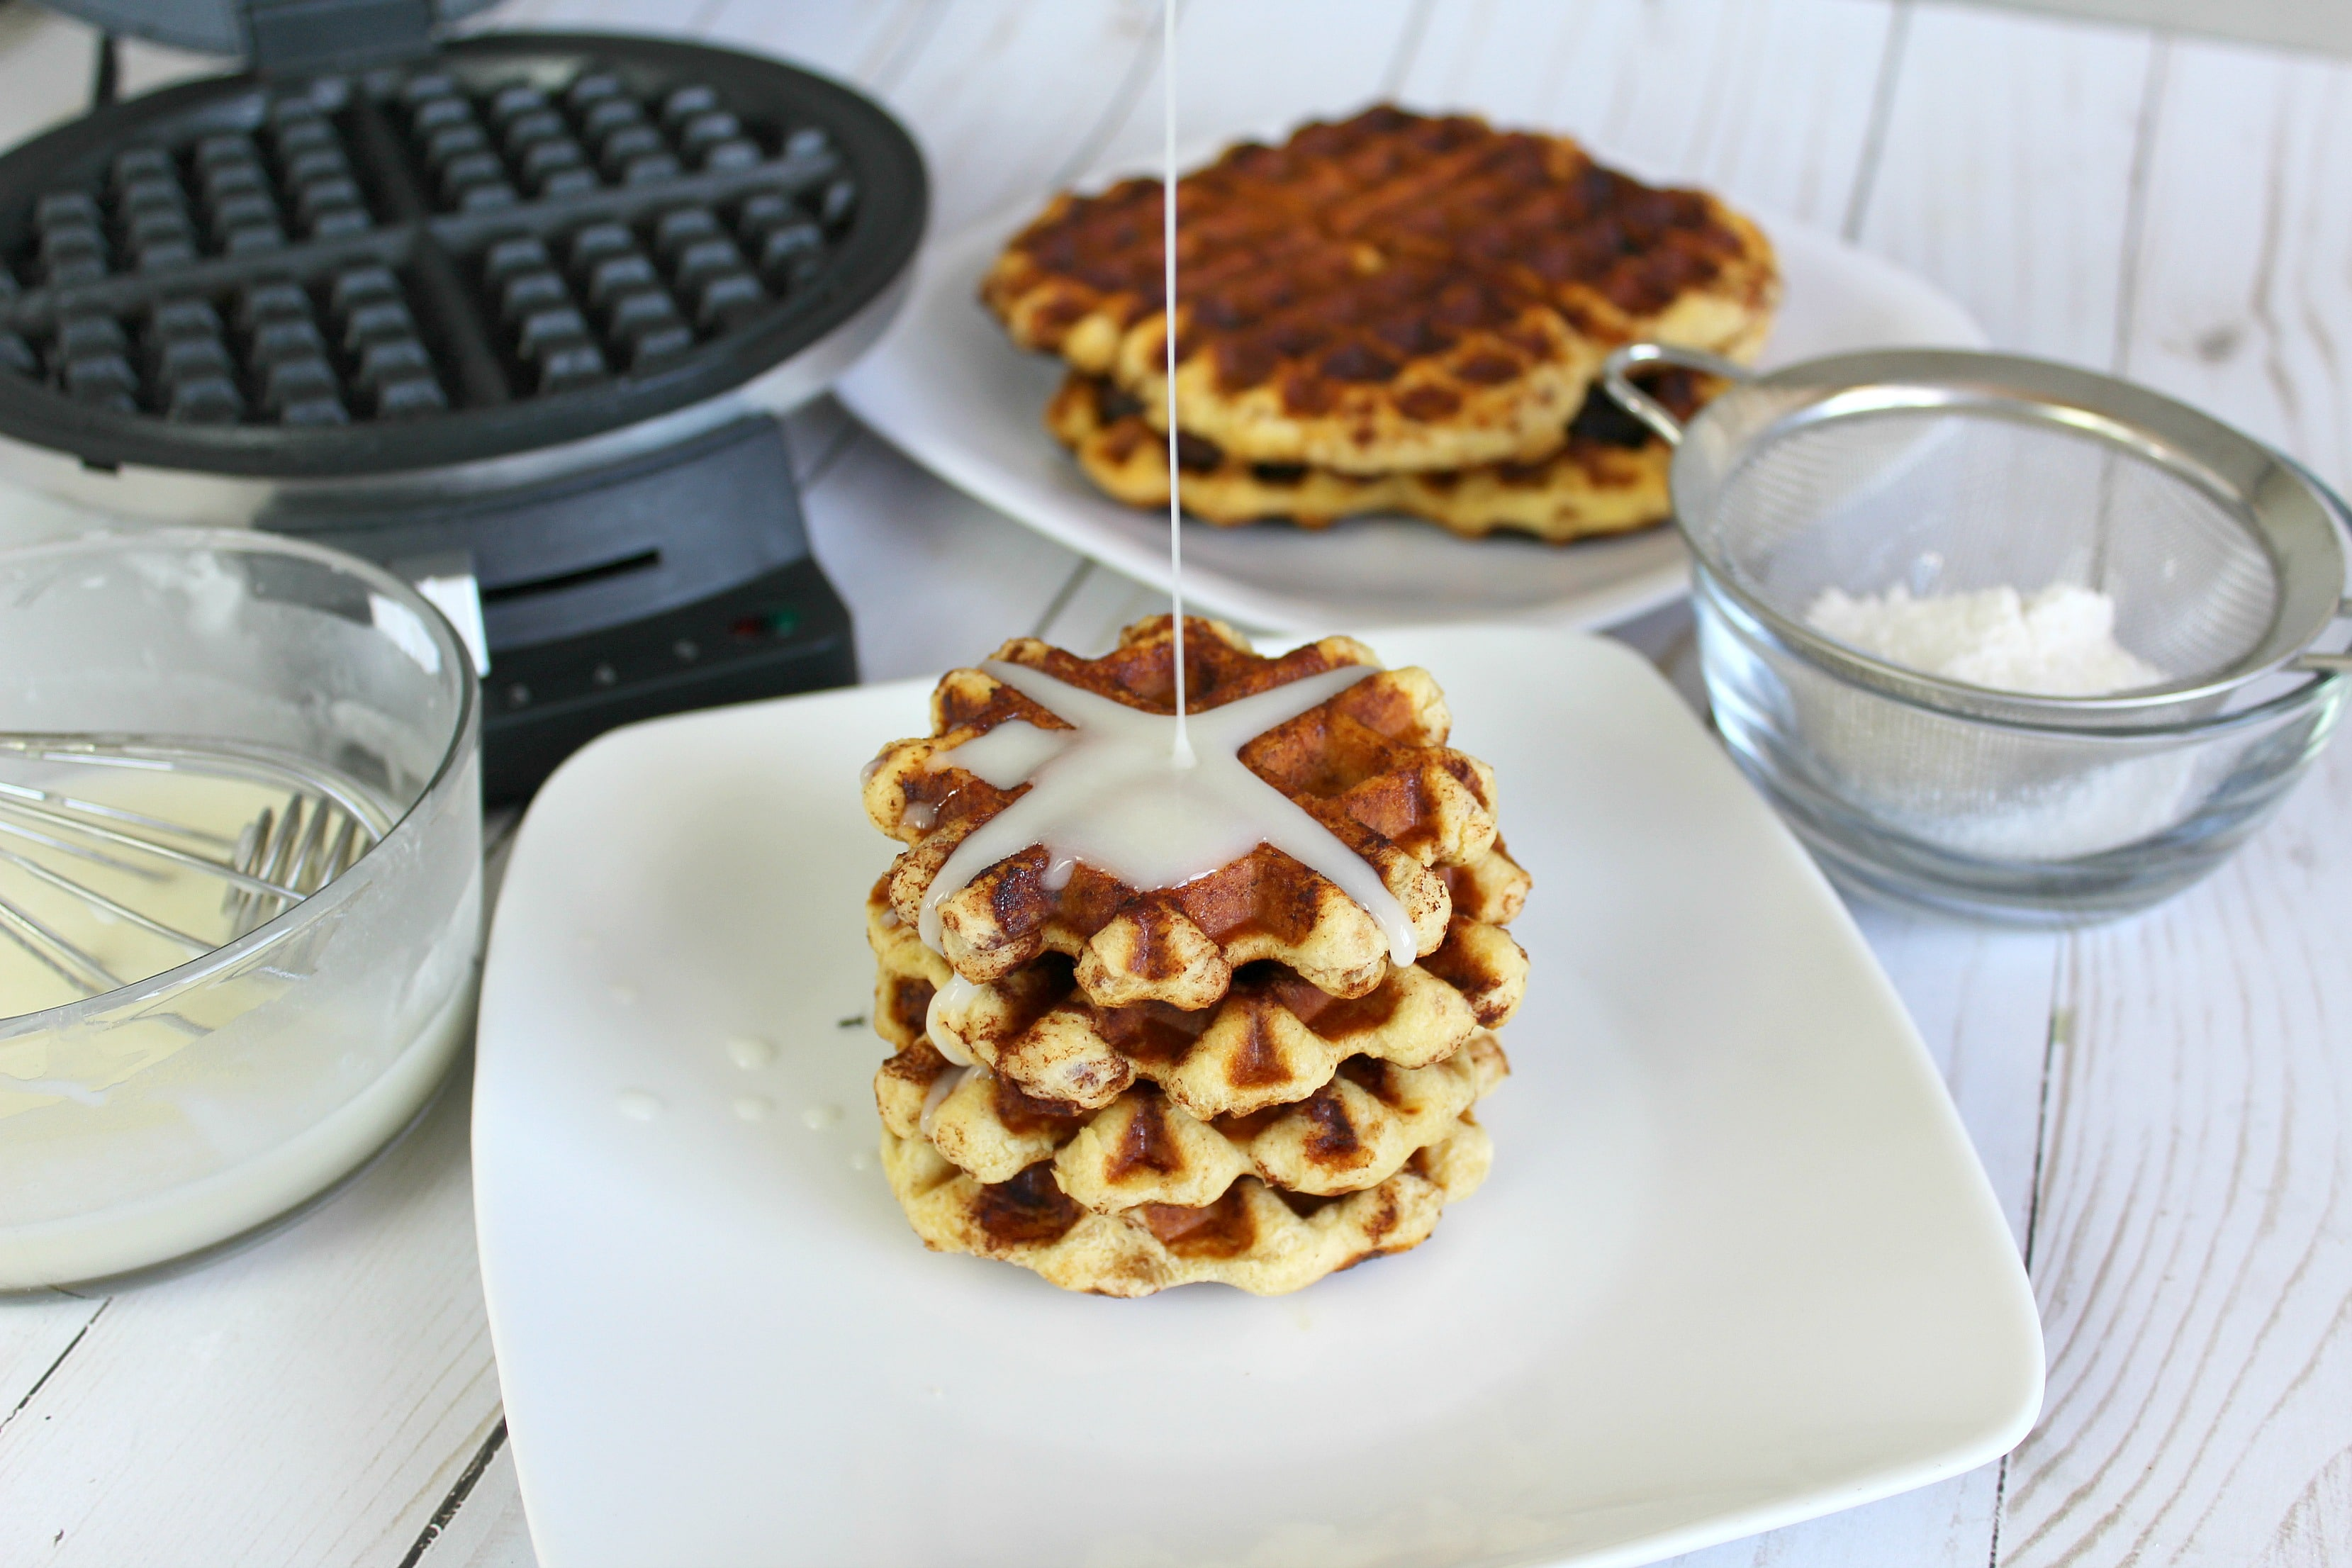 Serve these cinnamon waffles with glaze for a delicious weekend brunch